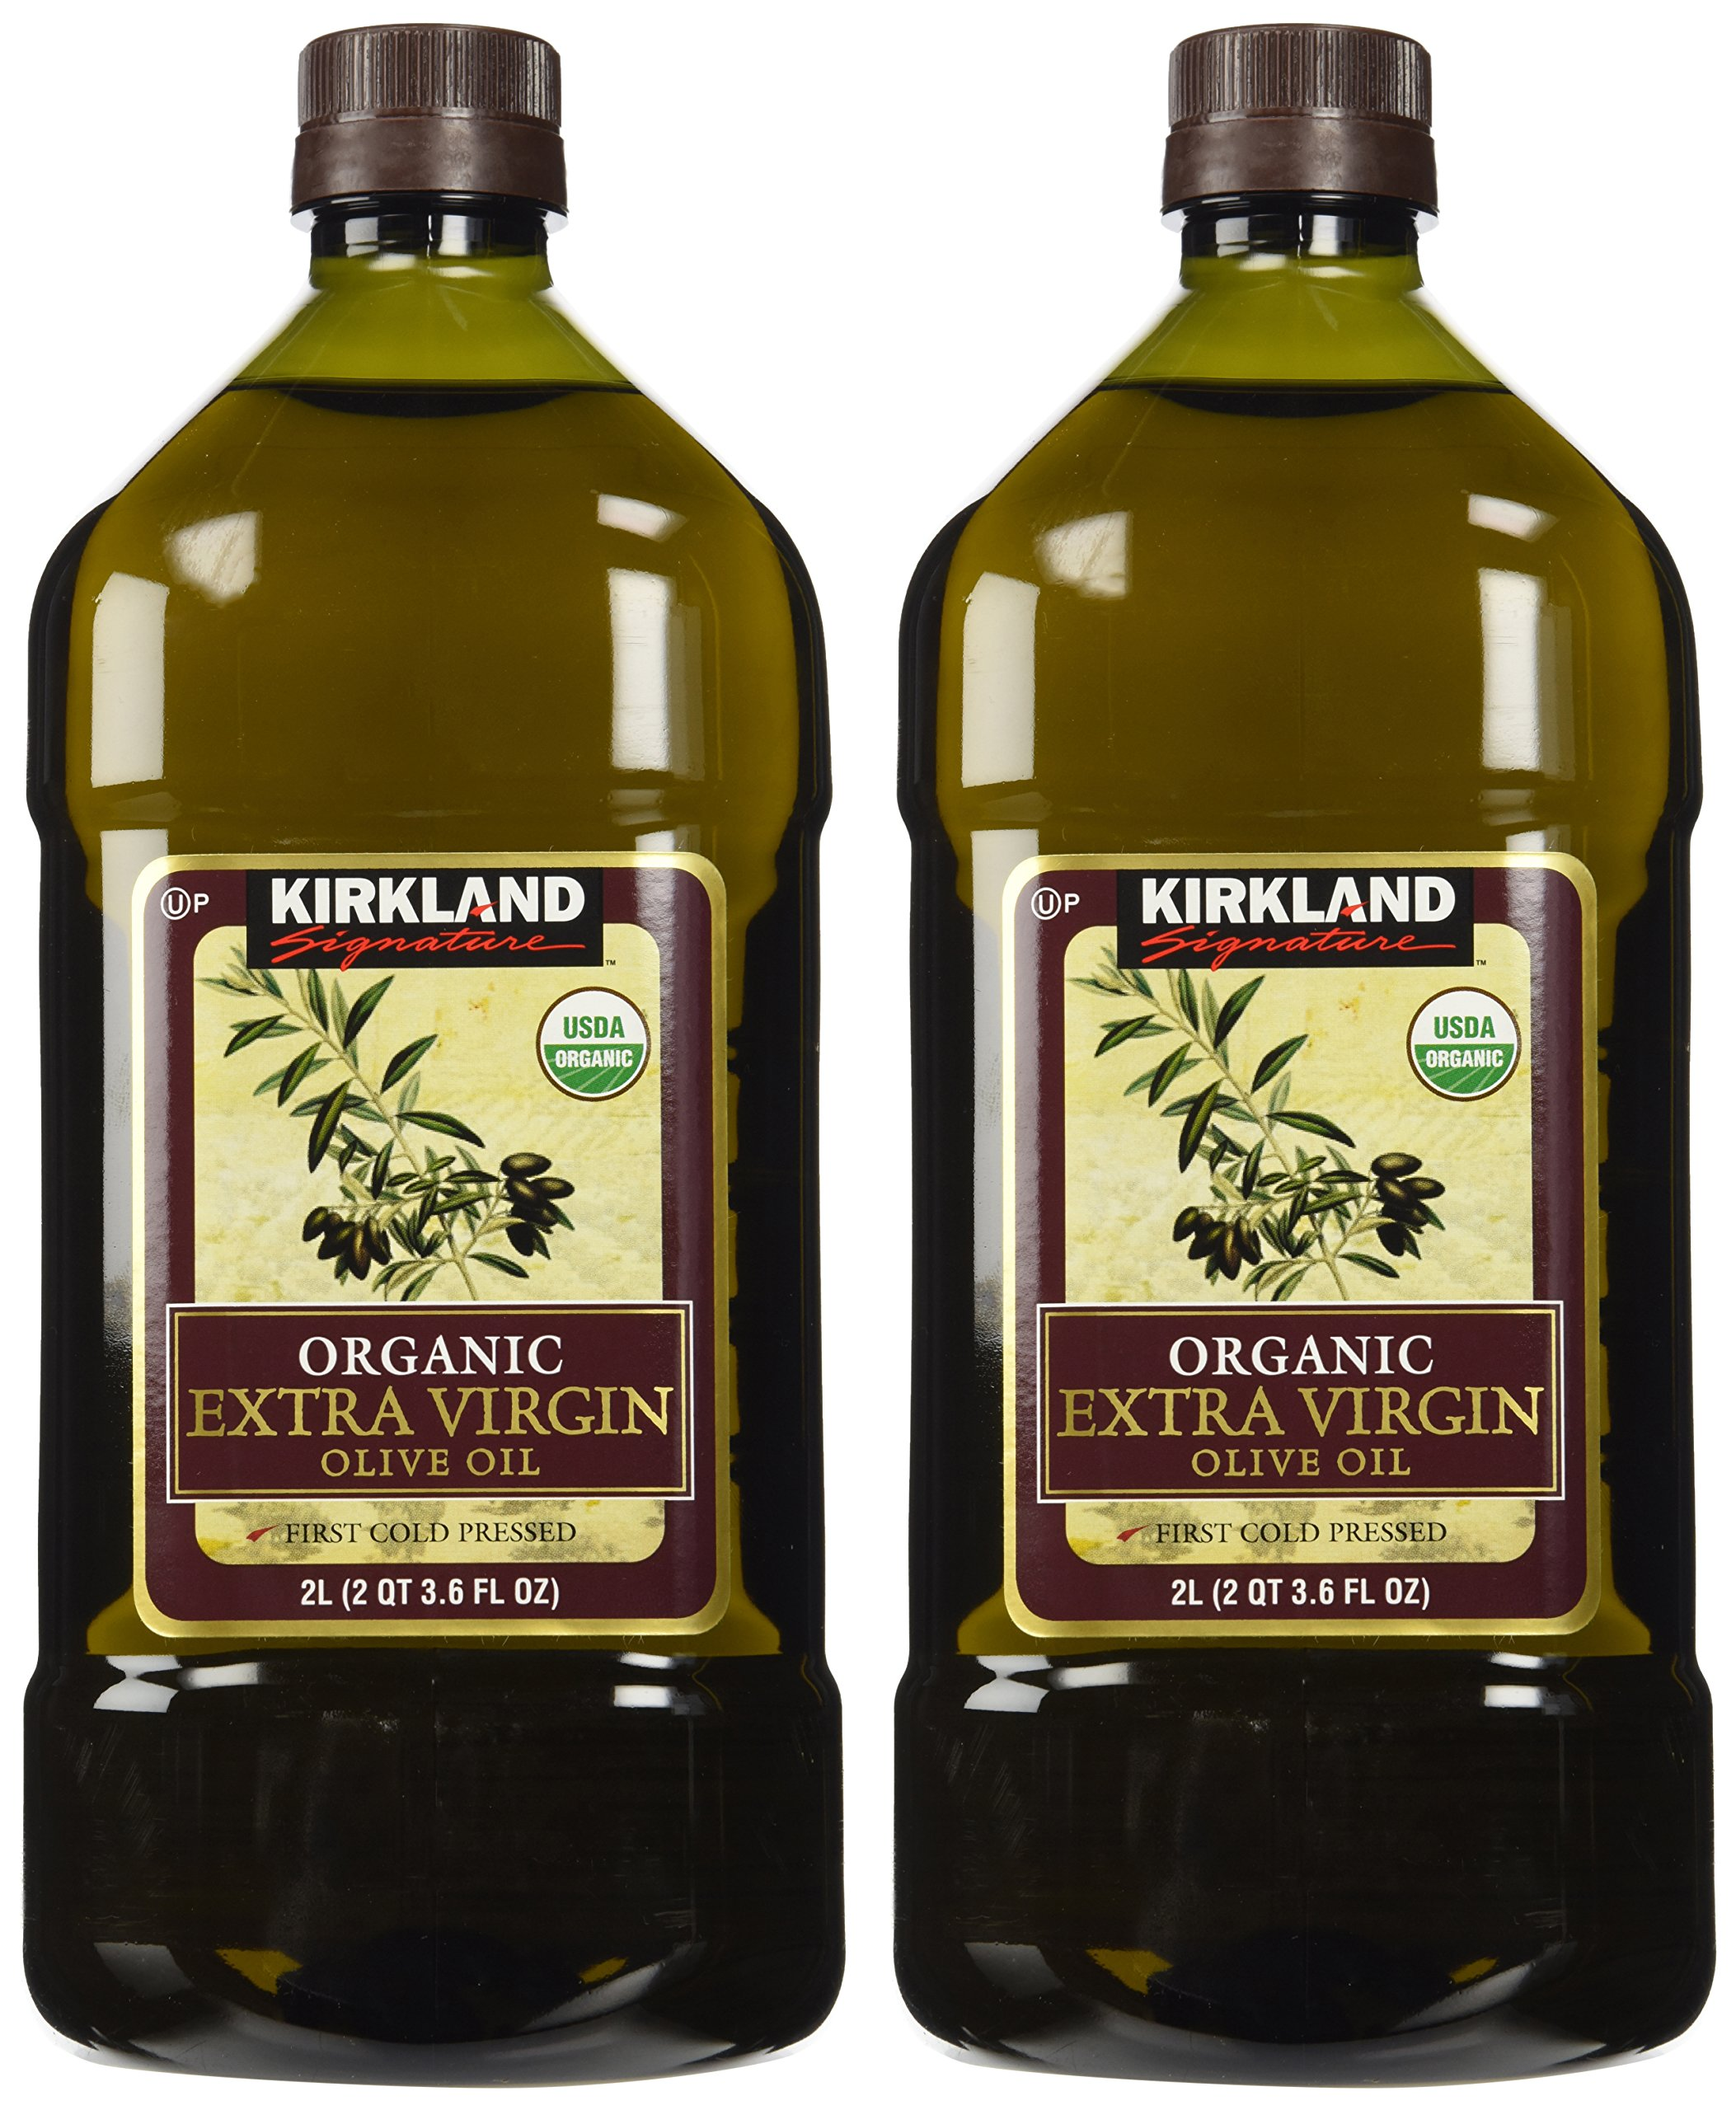 Kirkland Signature 2 x Organic Extra Virgin Olive Oil, 2 Liters by Kirkland Signature